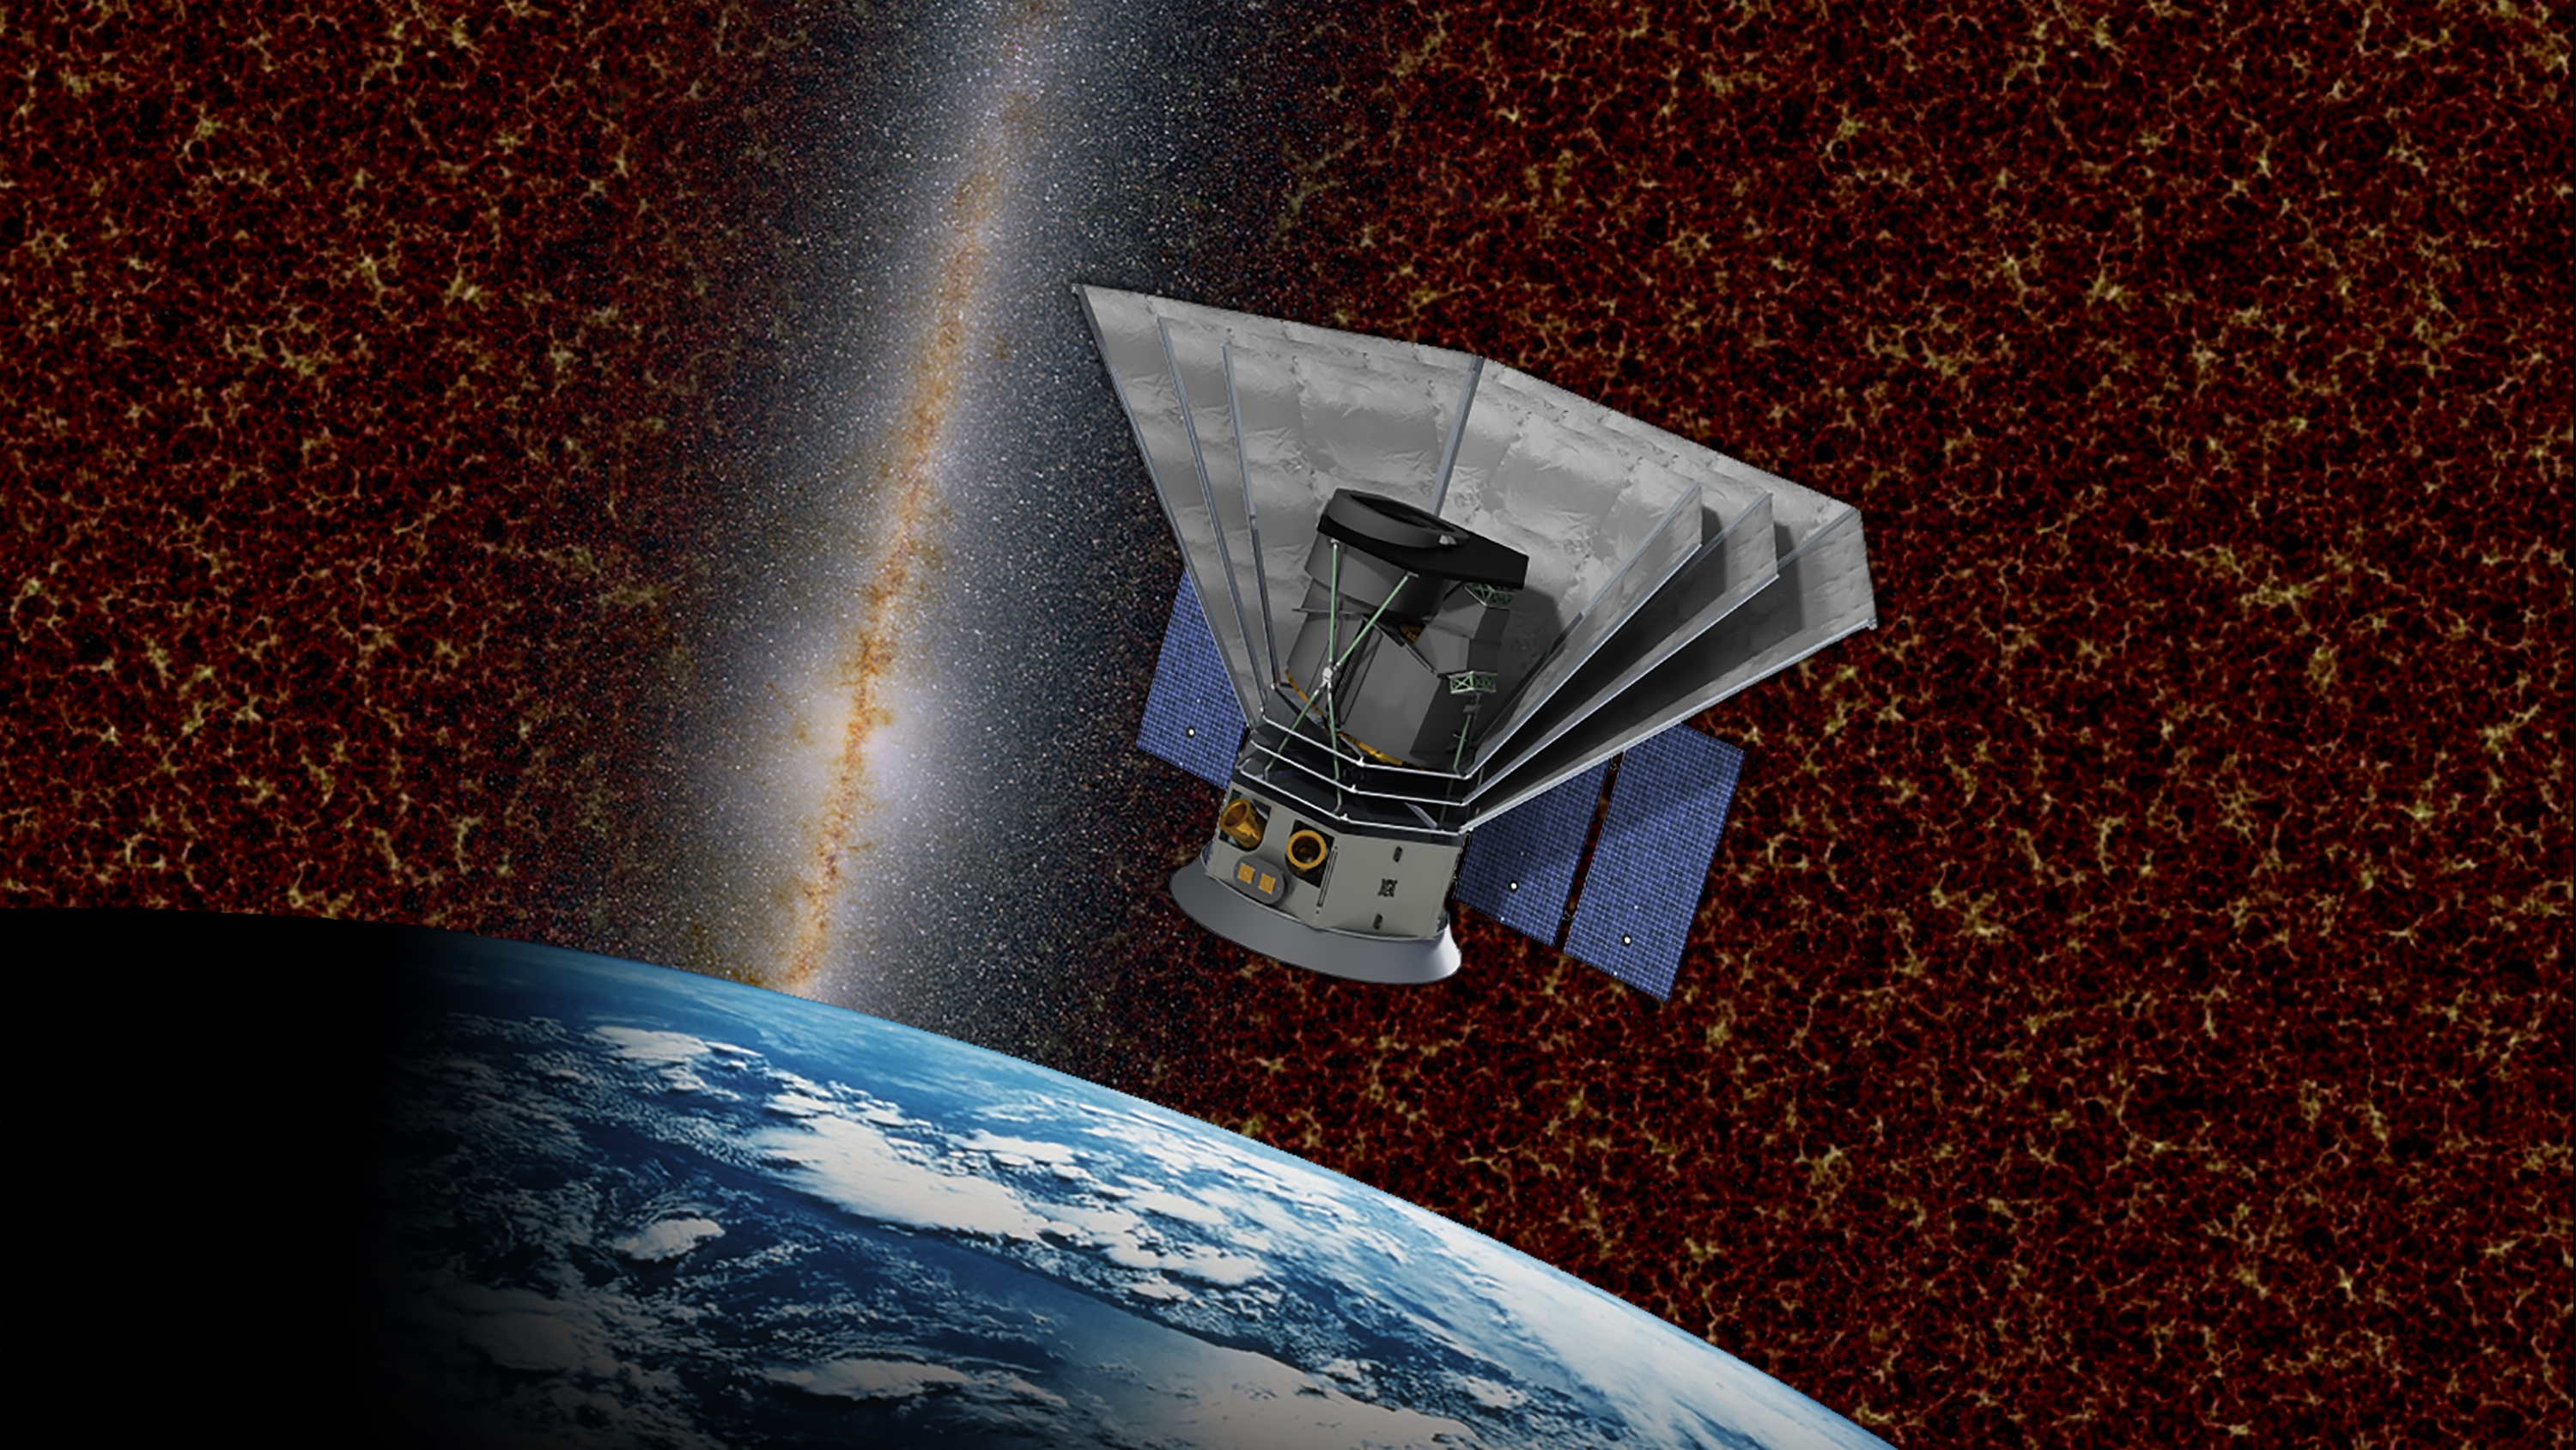 NASA's SPHEREx astrophysics mission